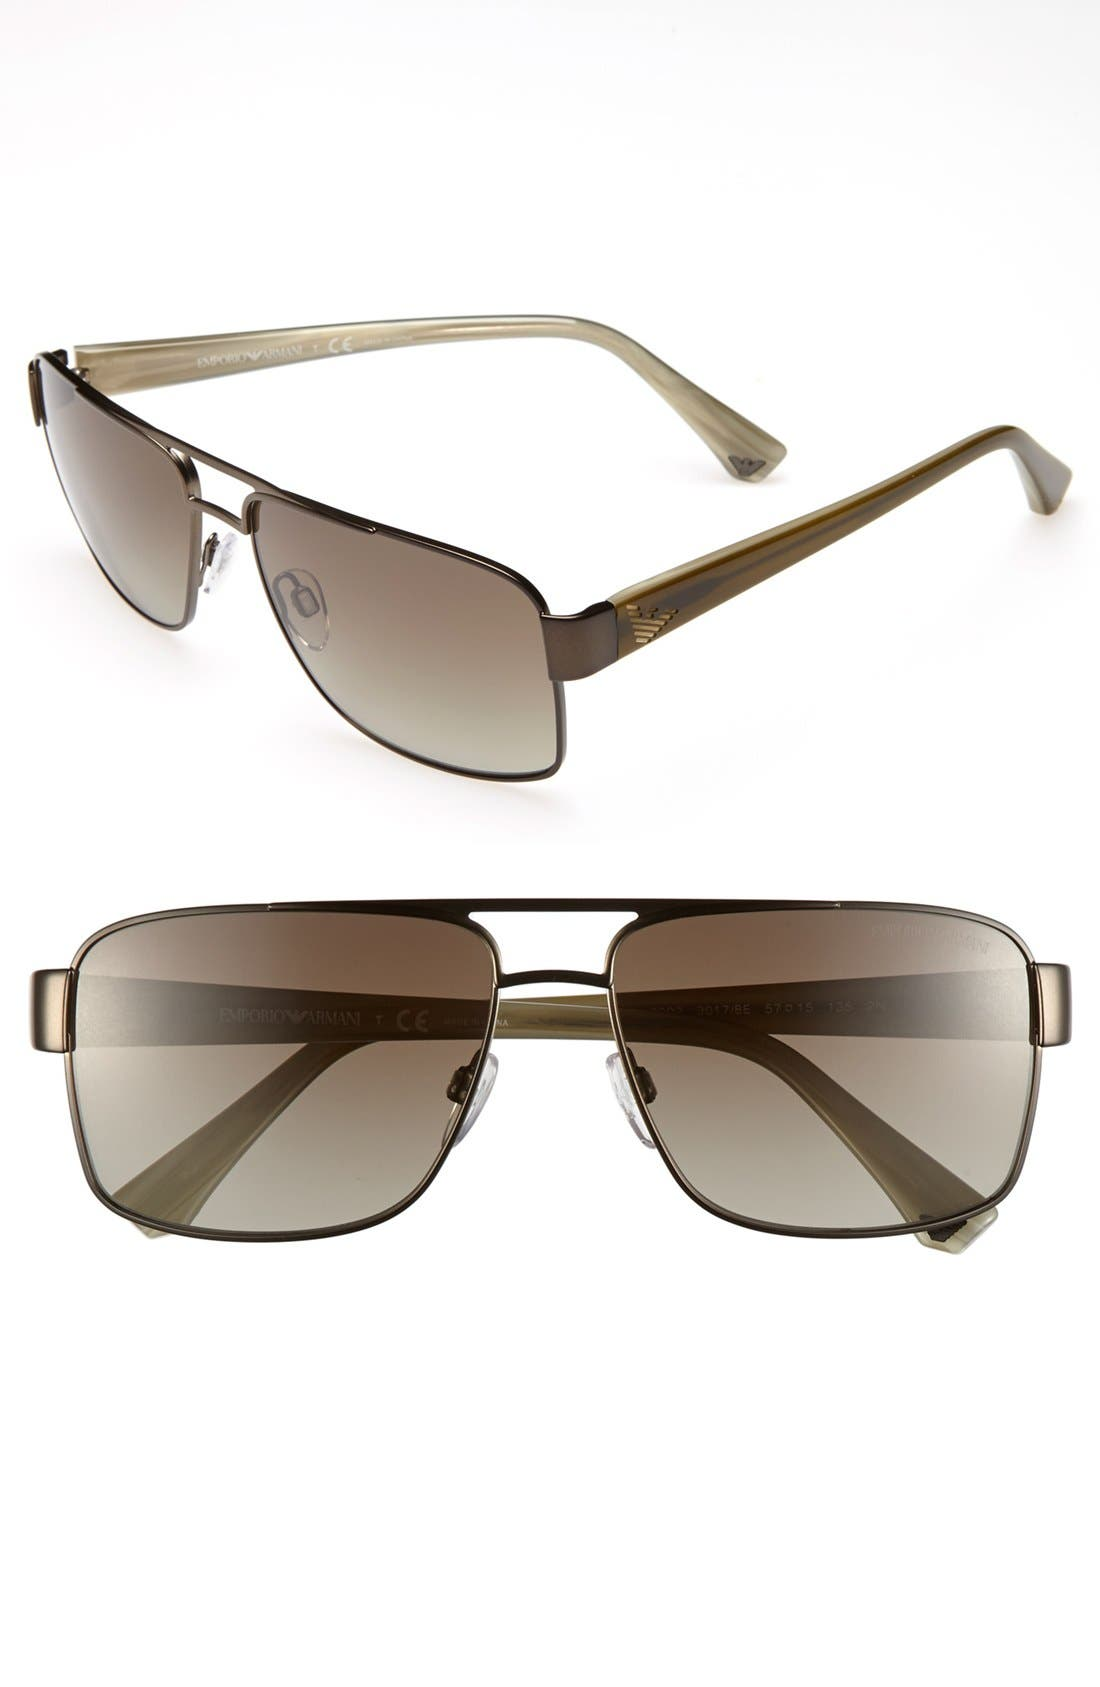 Alternate Image 1 Selected - Emporio Armani 57mm Sunglasses